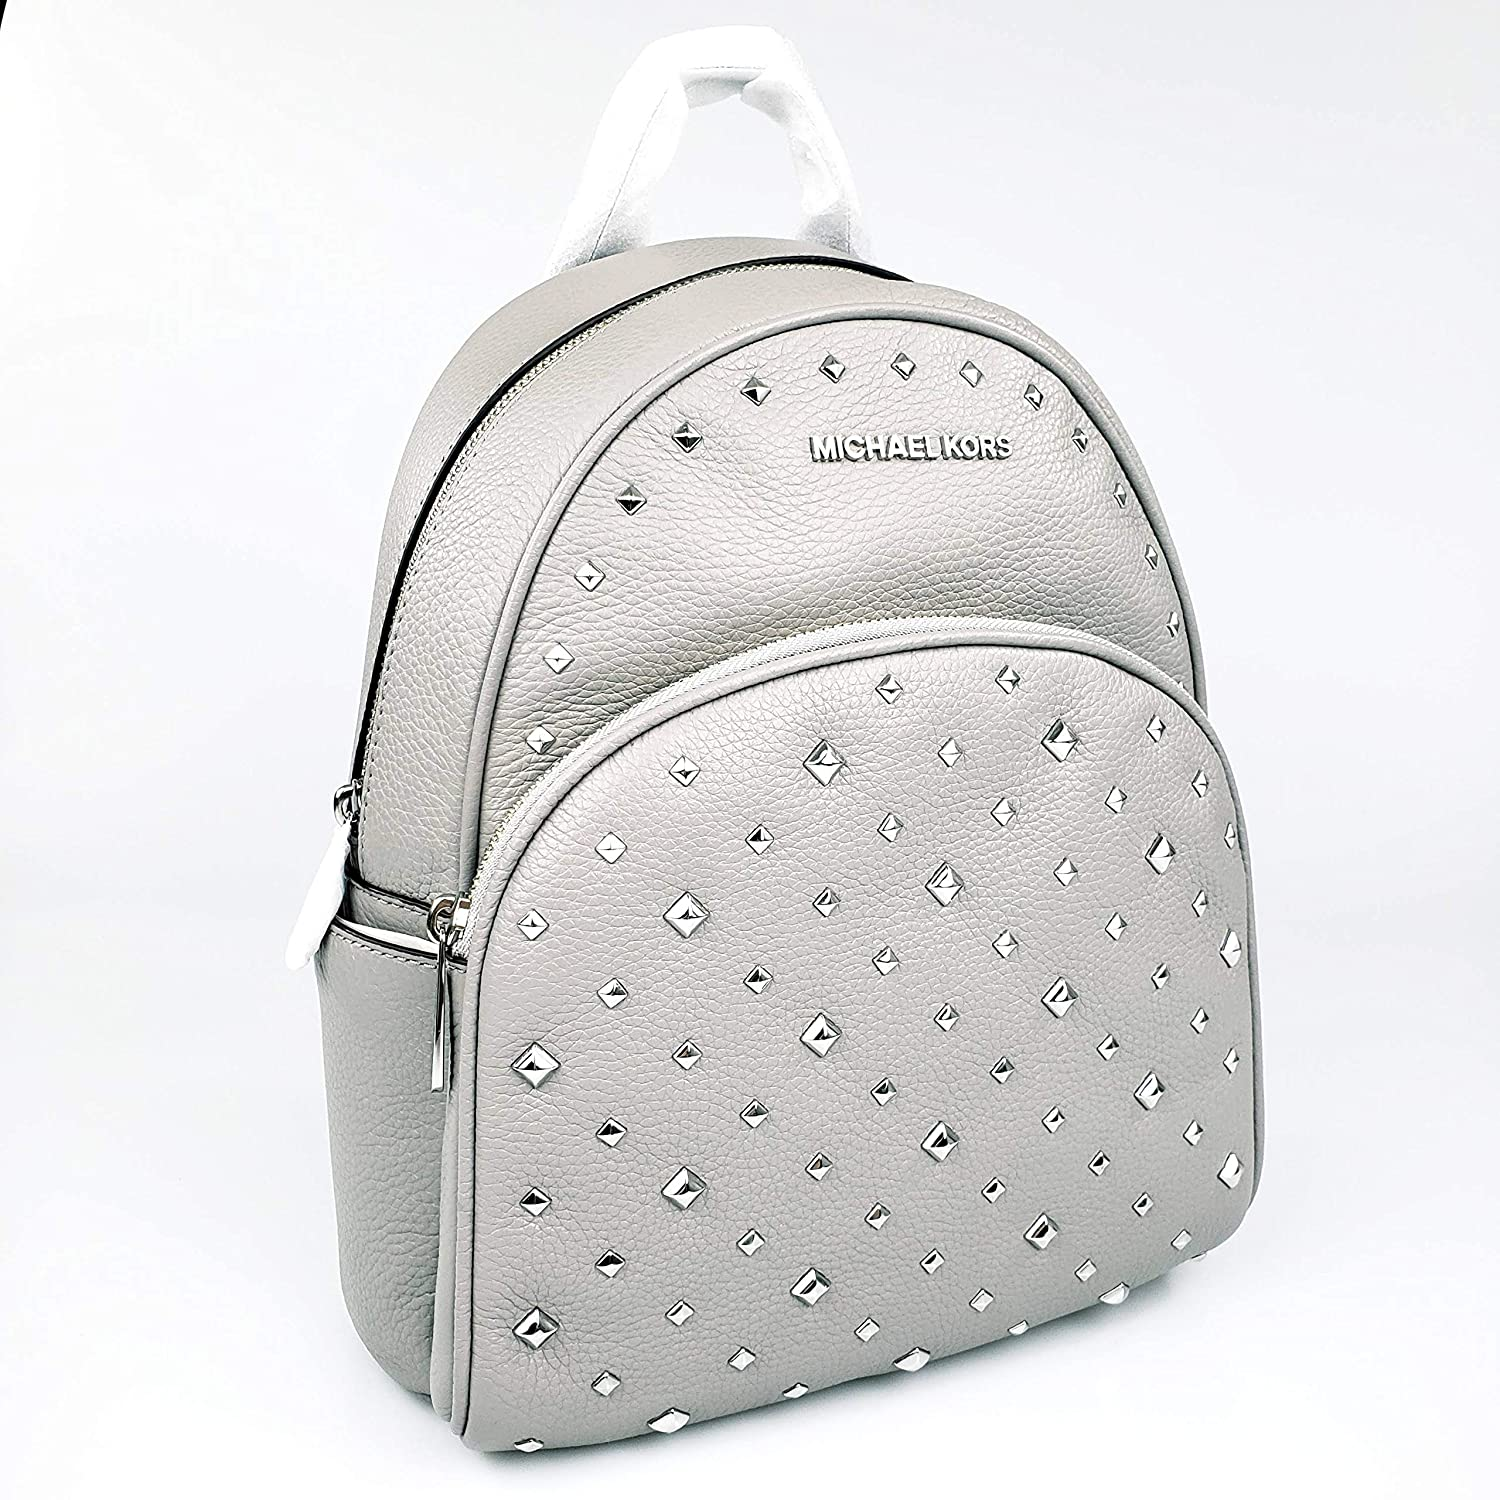 b377ba8efec581 Amazon.com: MICHAEL KORS Abbey Medium Studded Backpack in ASH Grey Pebbled  Leather: Computers & Accessories